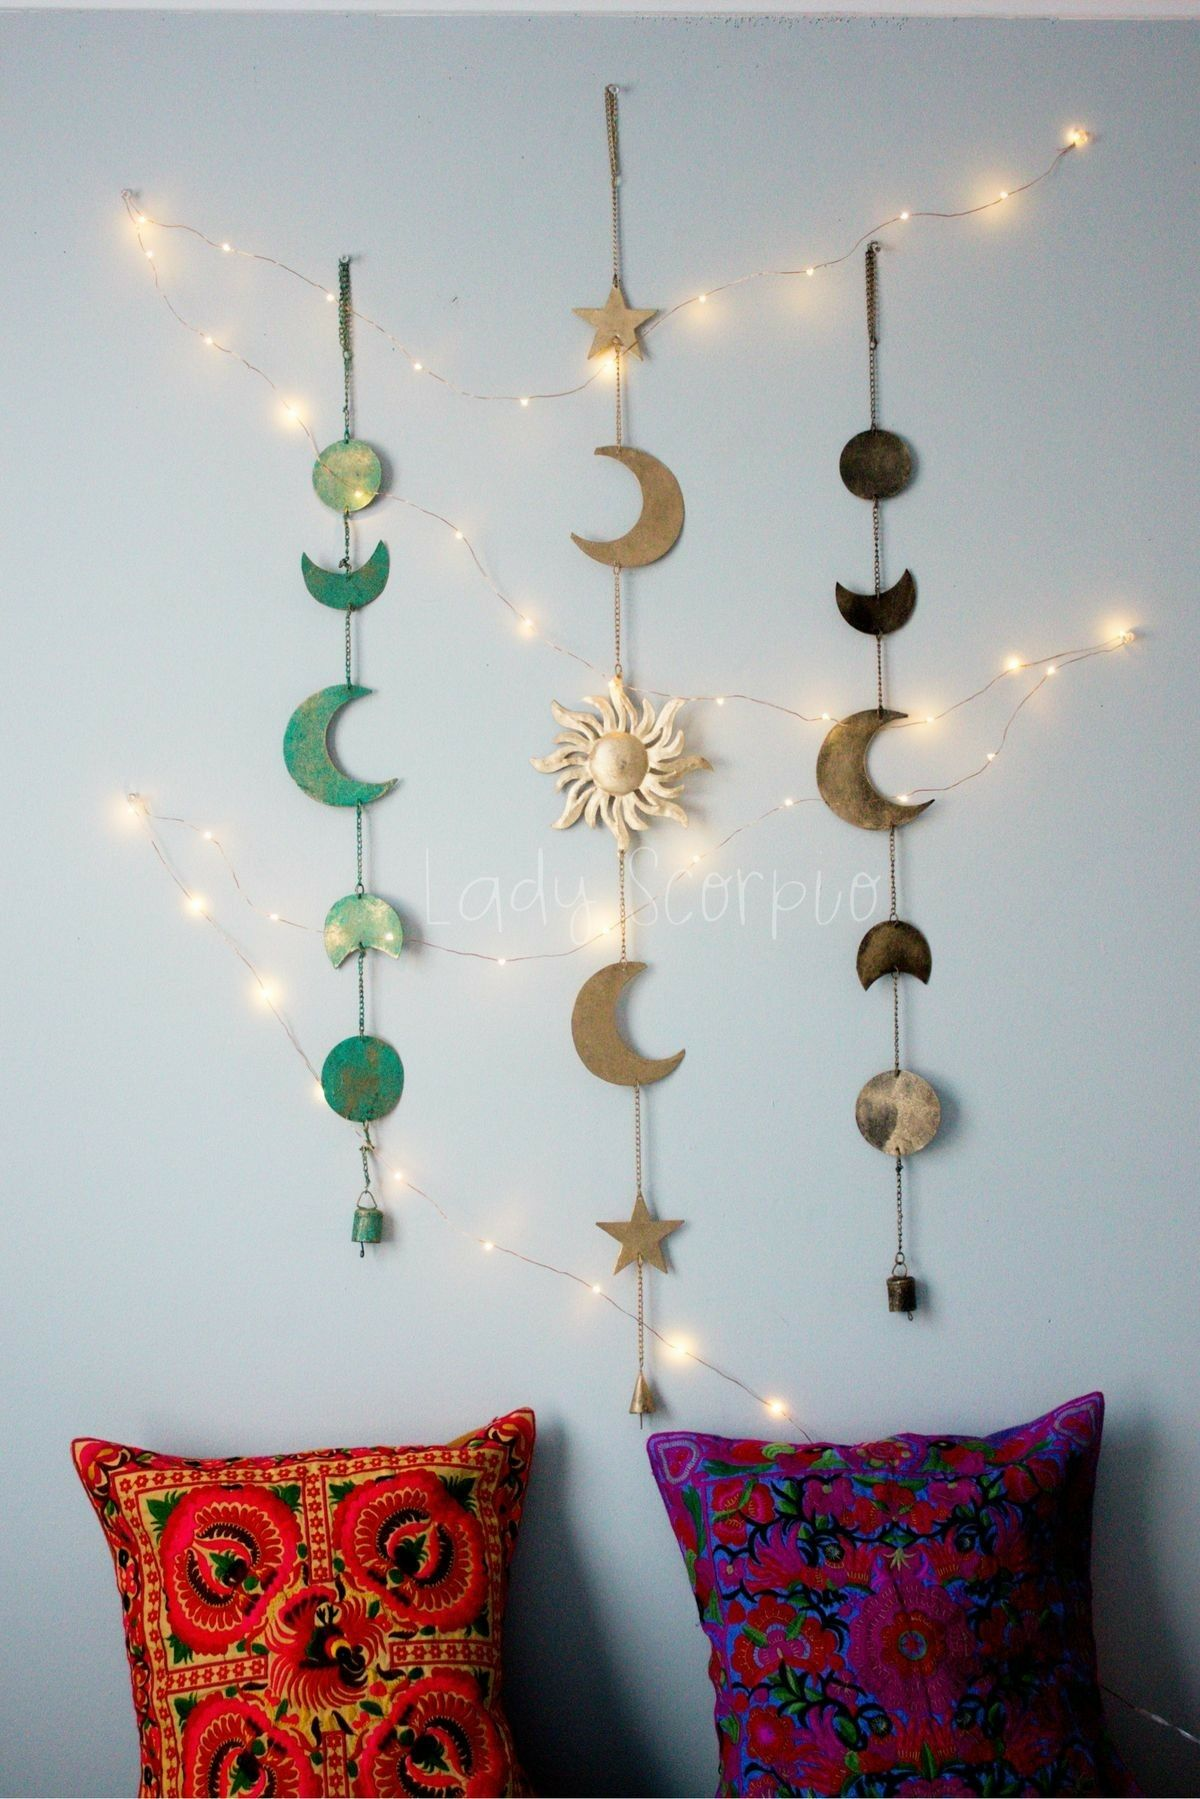 Pinterest Shelby Taylor11 Diy Wall Decor Inspiration Hanging